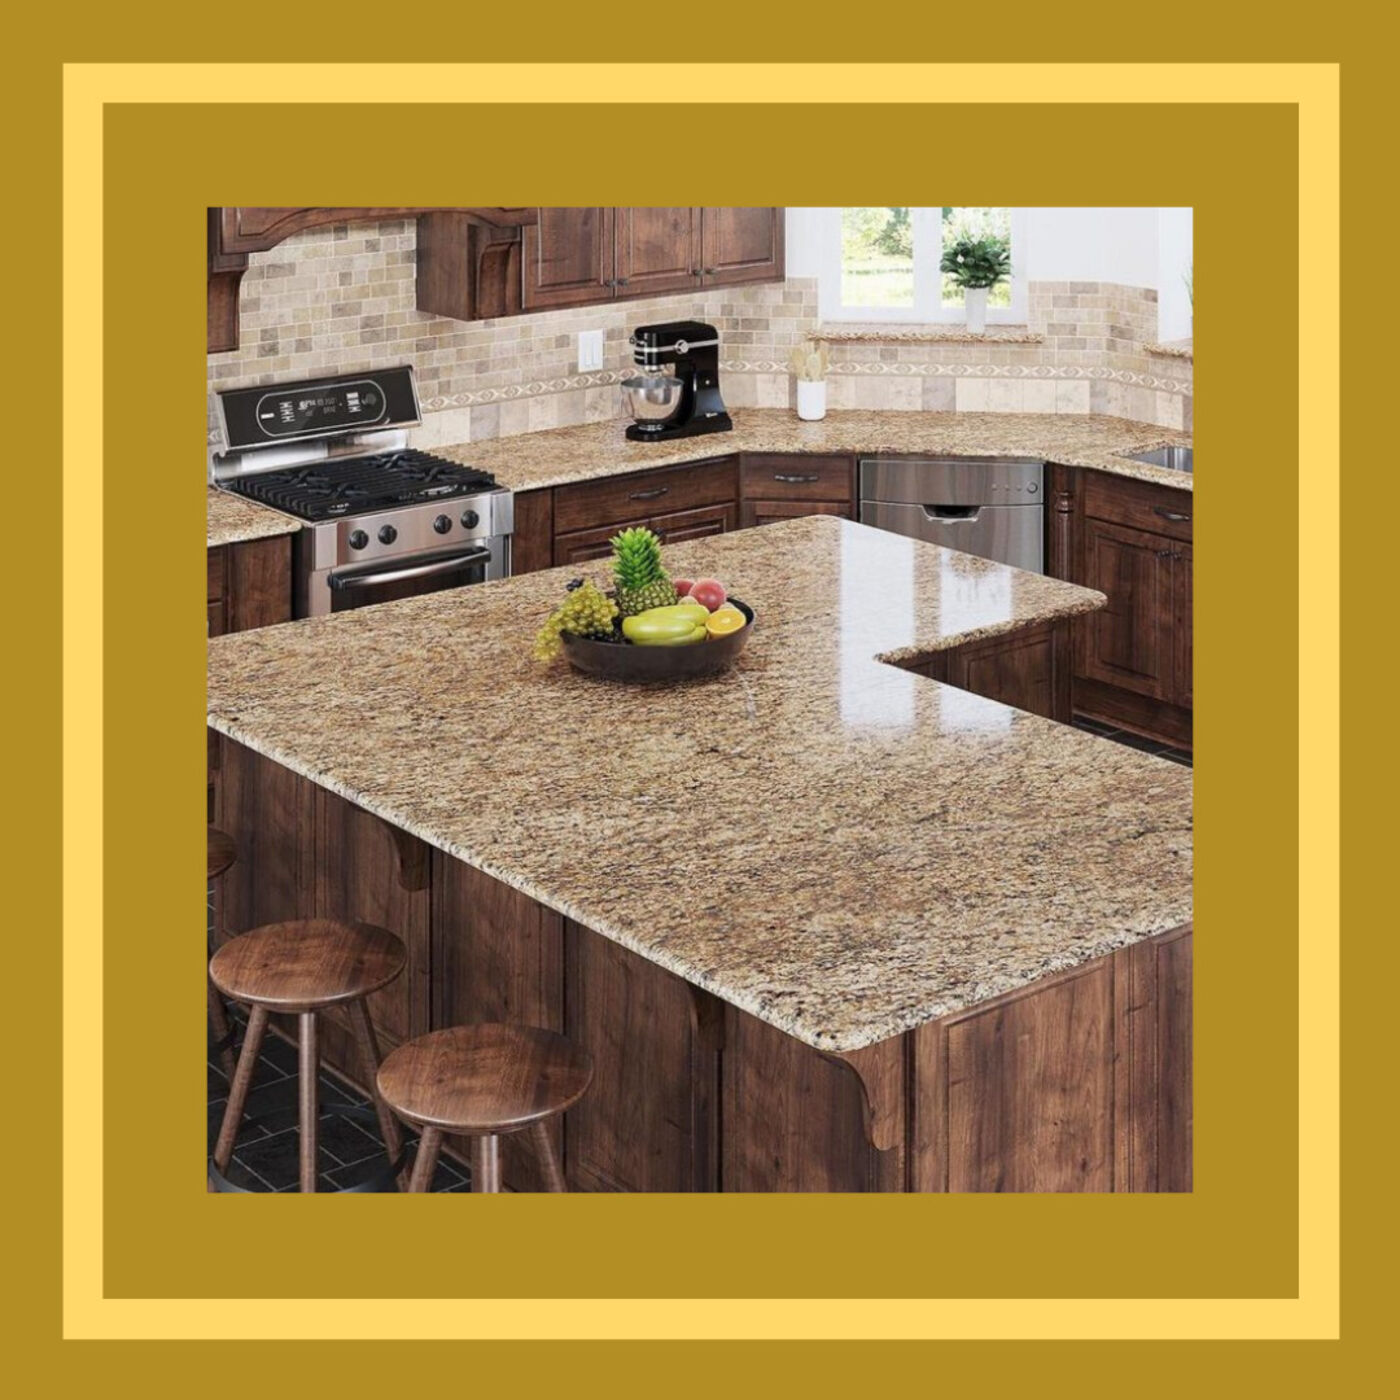 Countertops: Let's Marble at the Beauty of Marble